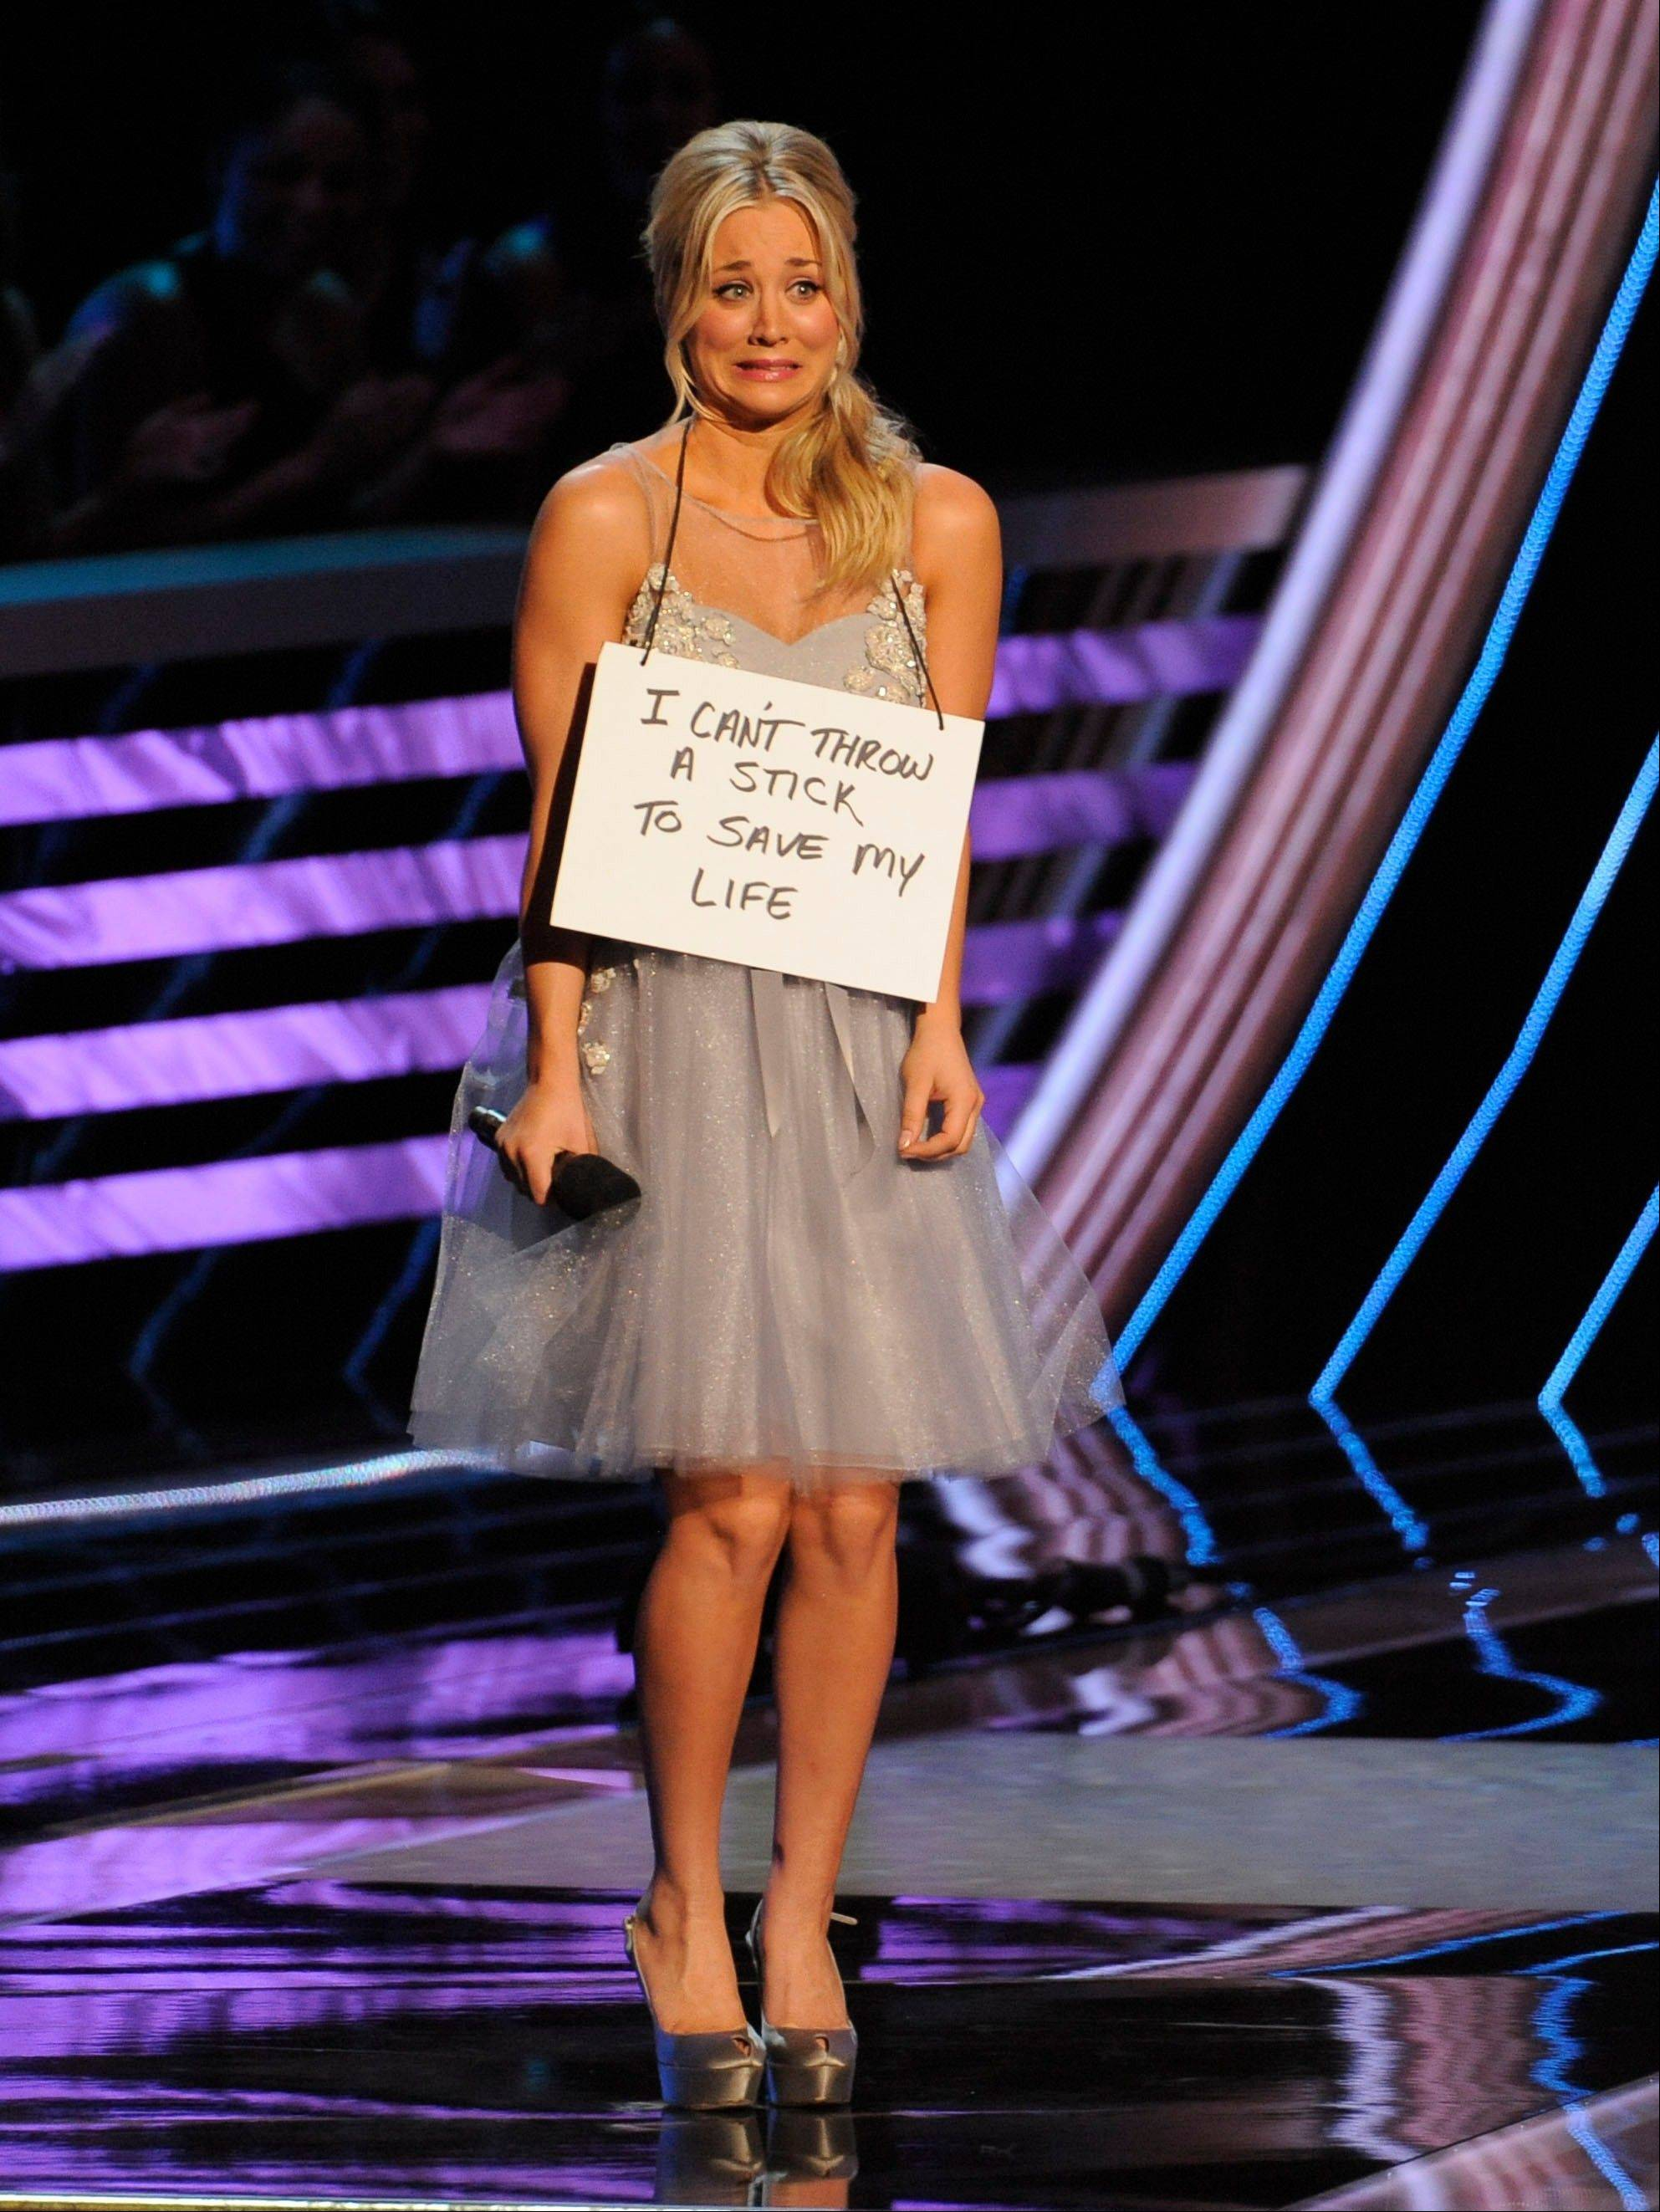 Host Kaley Cuoco is seen on stage at the People's Choice Awards at the Nokia Theatre on Wednesday Jan. 9, 2013, in Los Angeles.